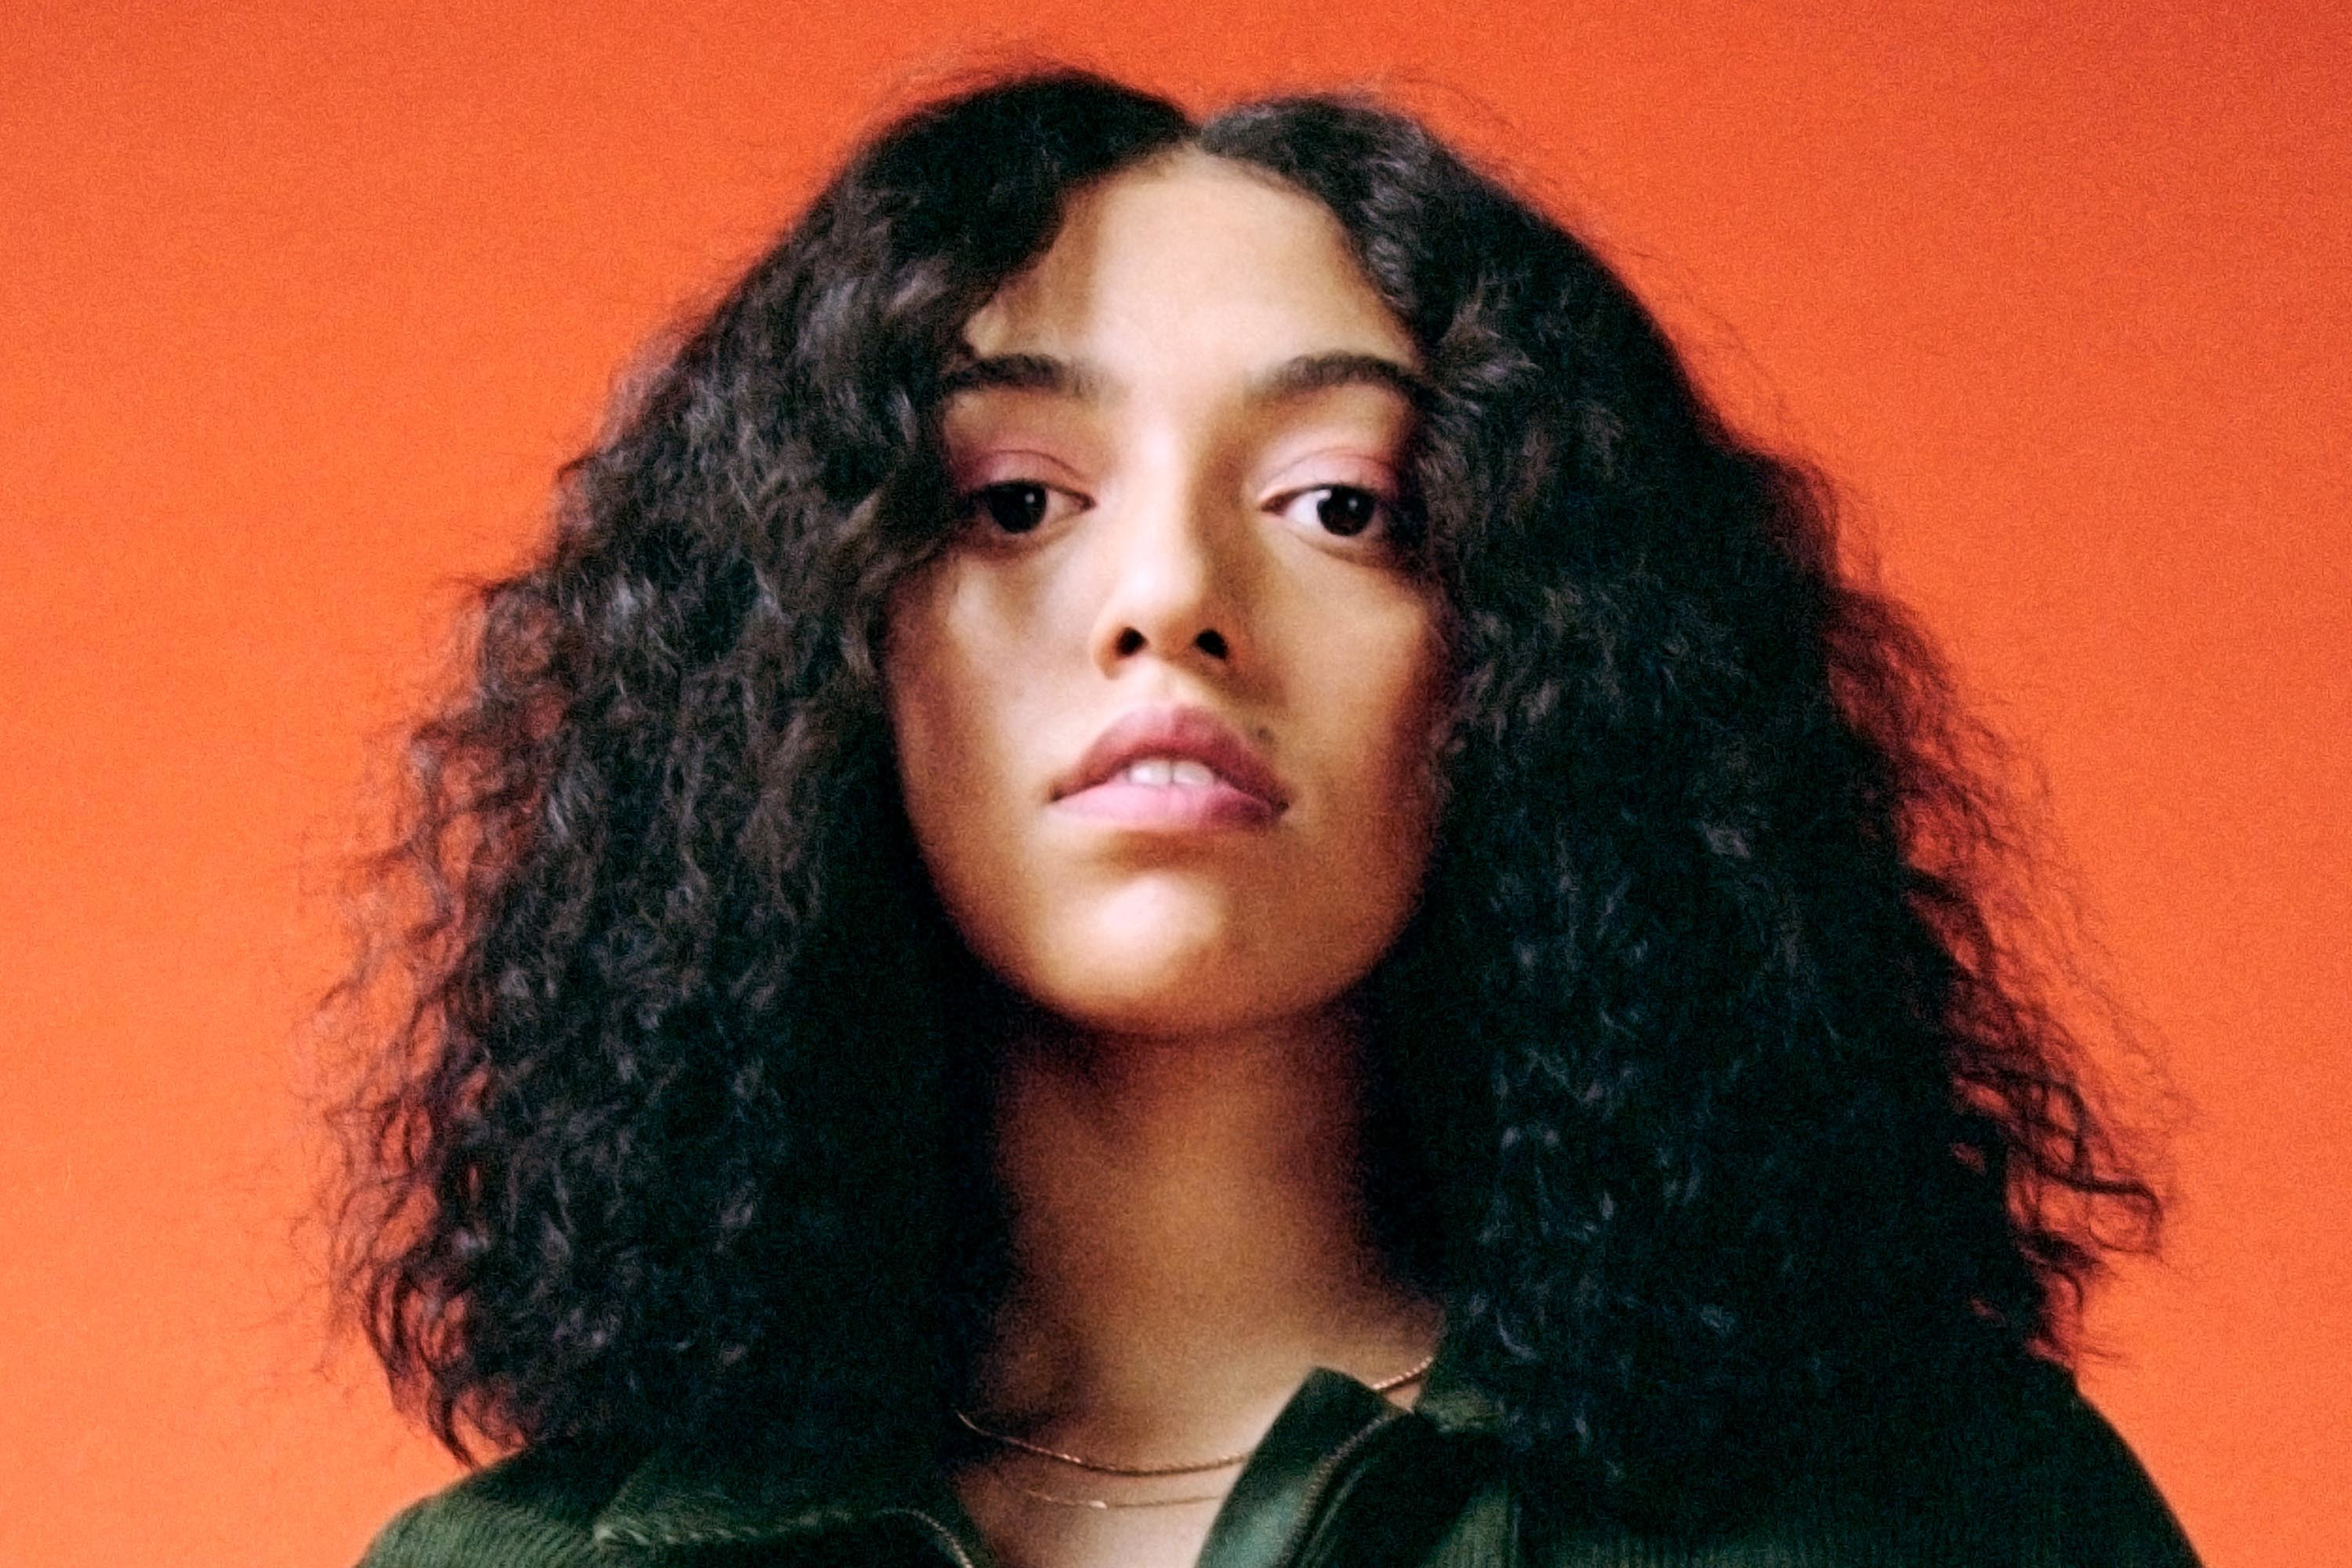 Mahalia airs new single, 'Do Not Disturb'